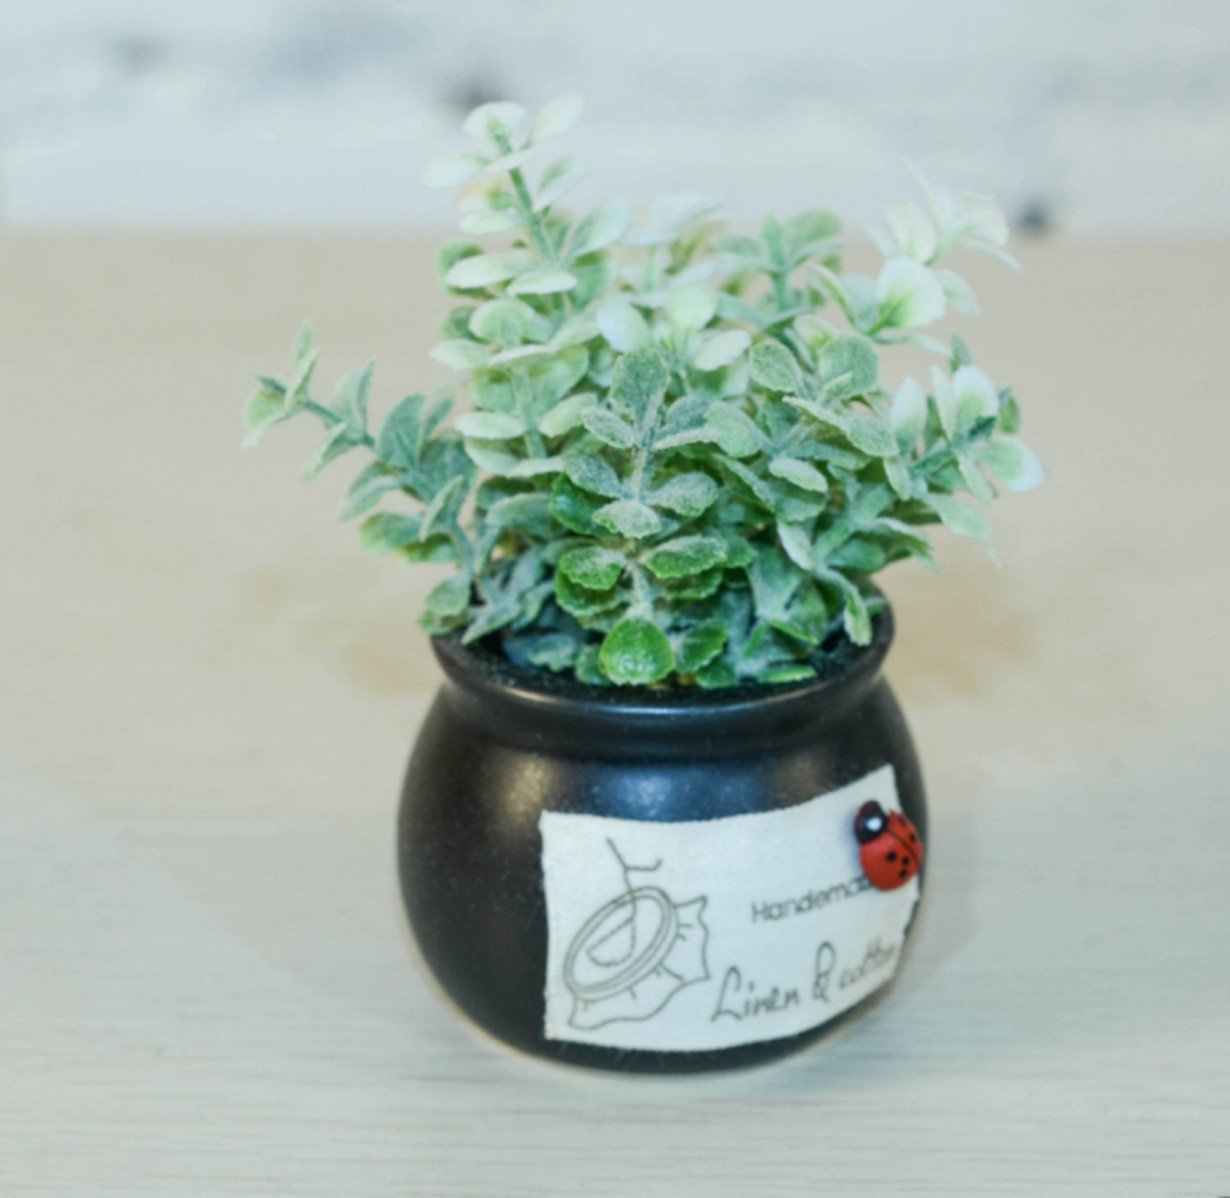 Zzooi Creative Mini Bonsai Suitable For:Office Table, Bed Table,Windows